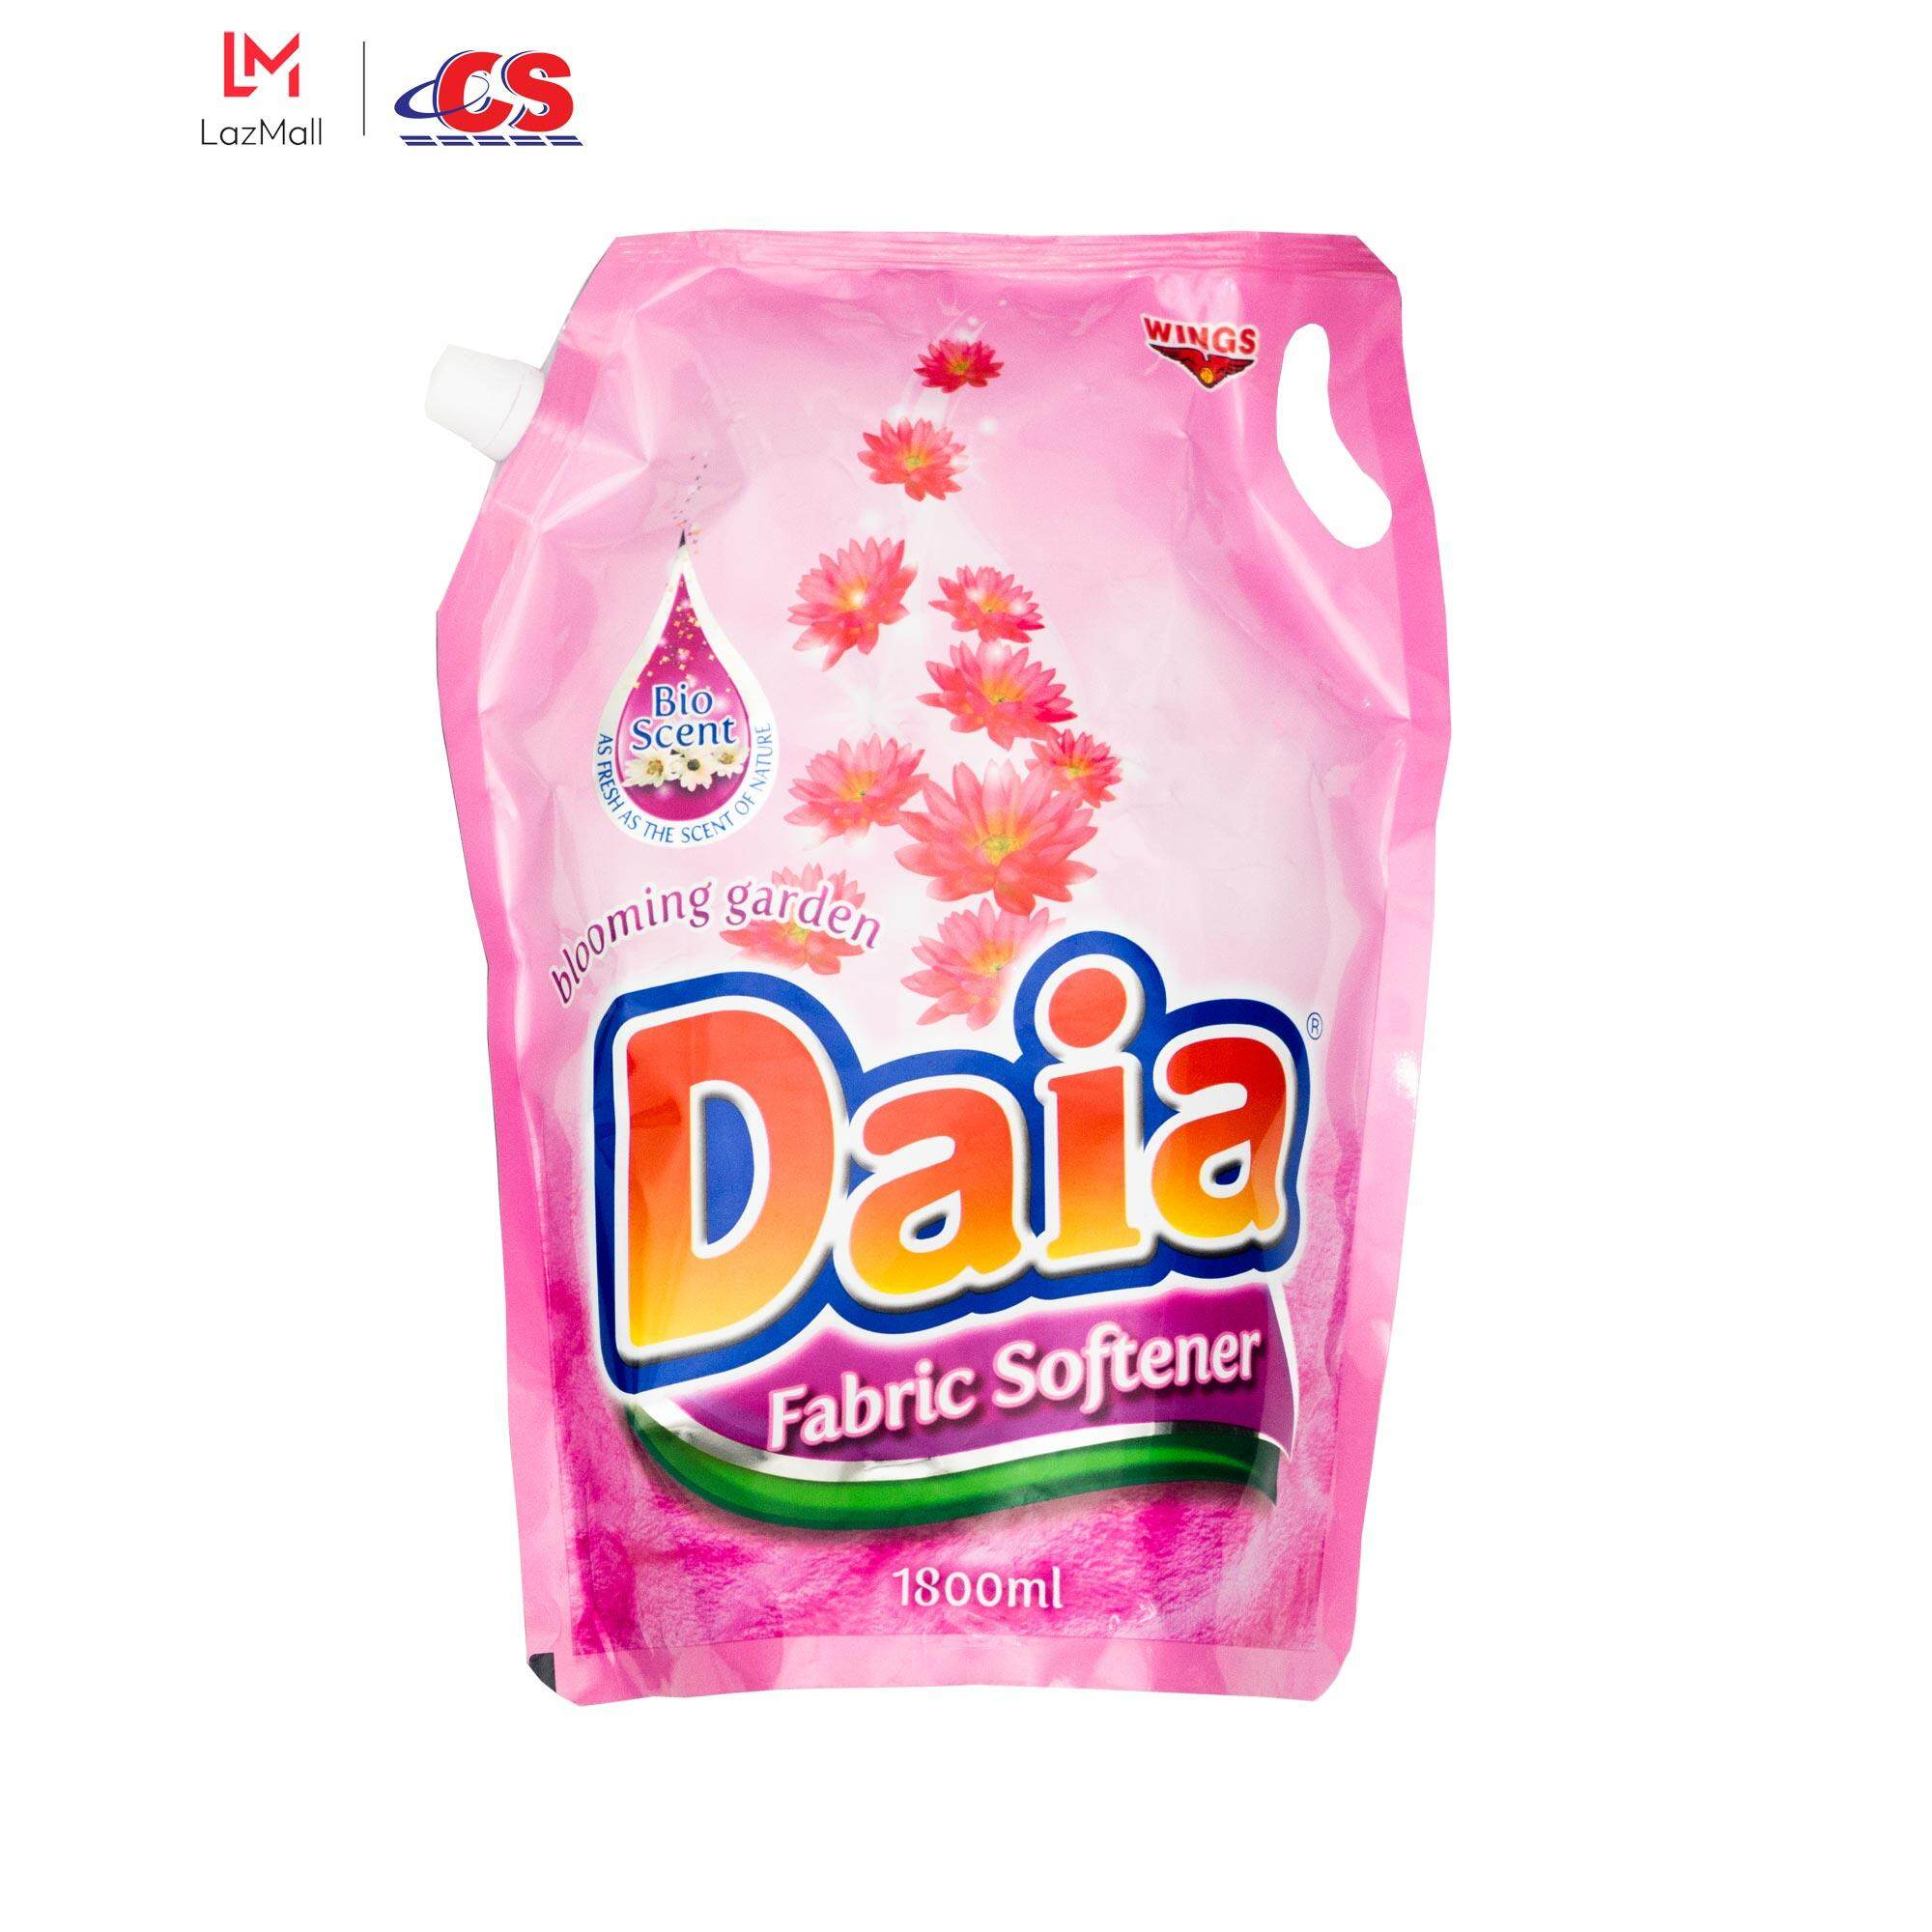 DAIA Fabric Softener Blooming Garden Pink Refill 1.8L